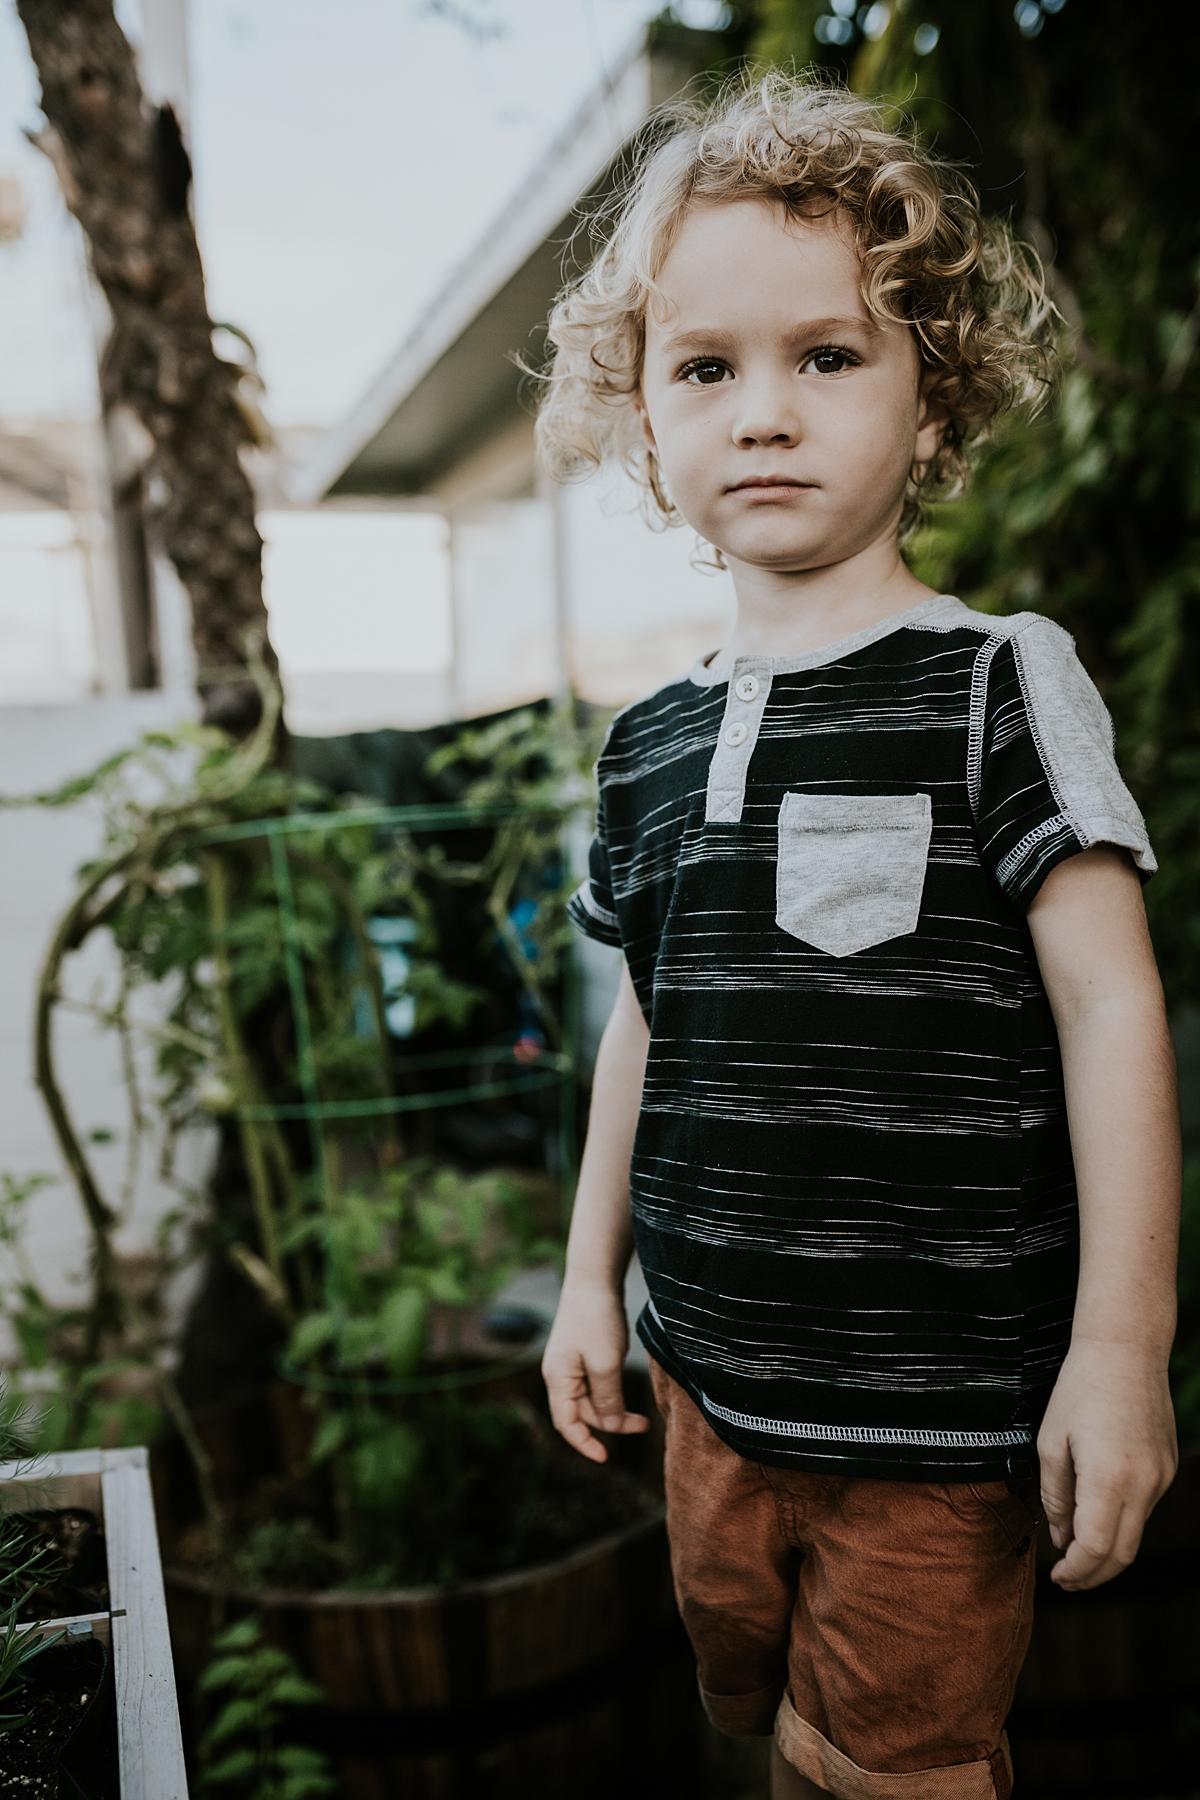 Orange County family photographer. Cute curly blonde haired boy stands in his front yard during in home session at Huntington Beach